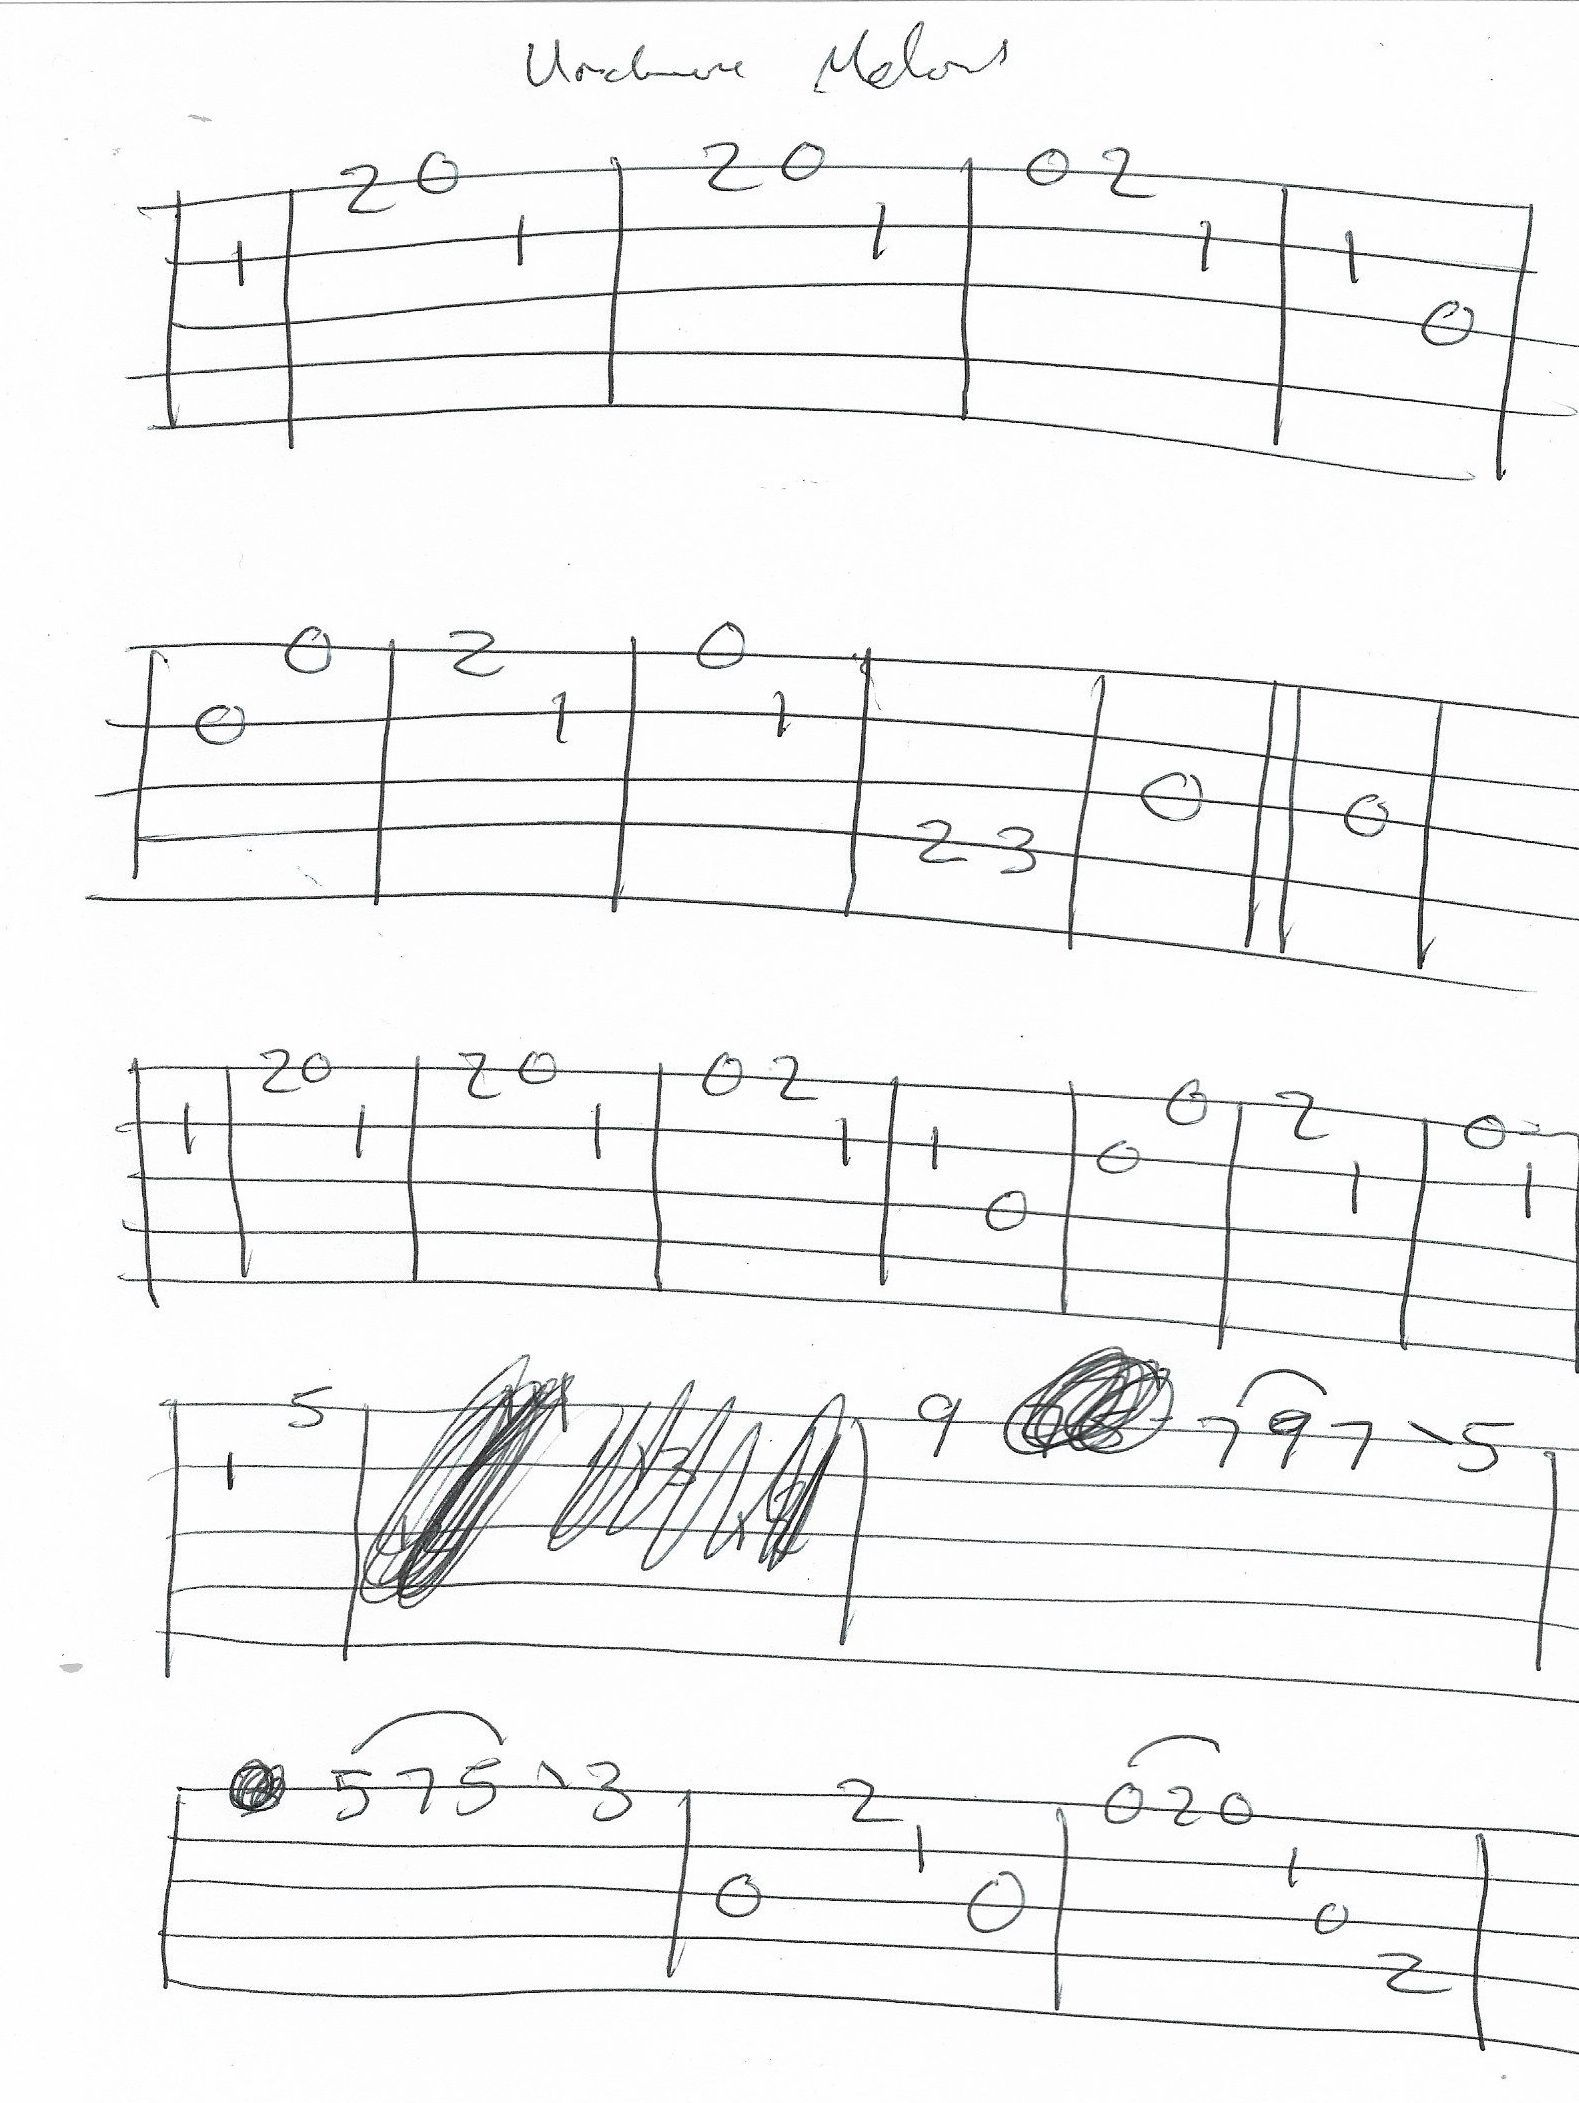 Unchained Melody Banjo Melody Tab Page 1 Of 2 With Images